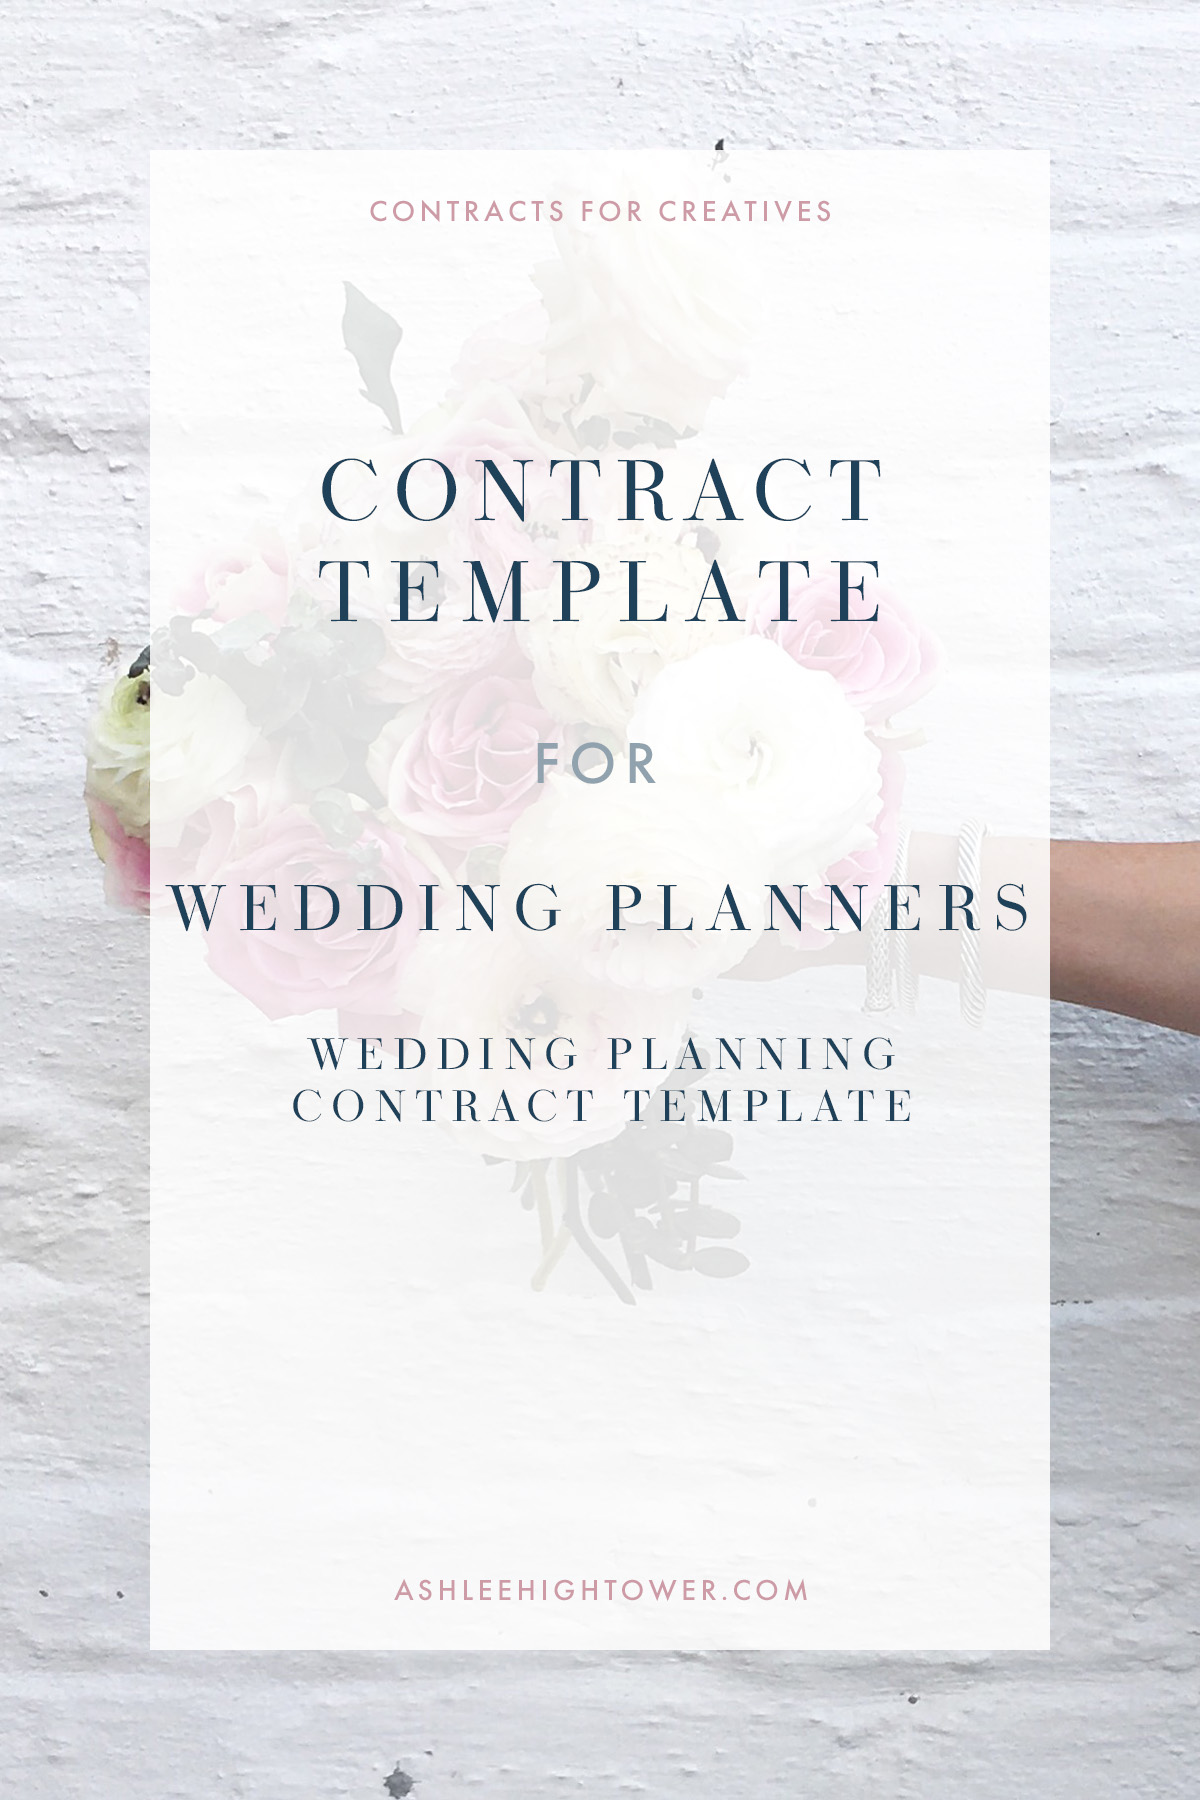 Contracts for Creatives | Wedding Planner Contract Template | Ashlee Hightower